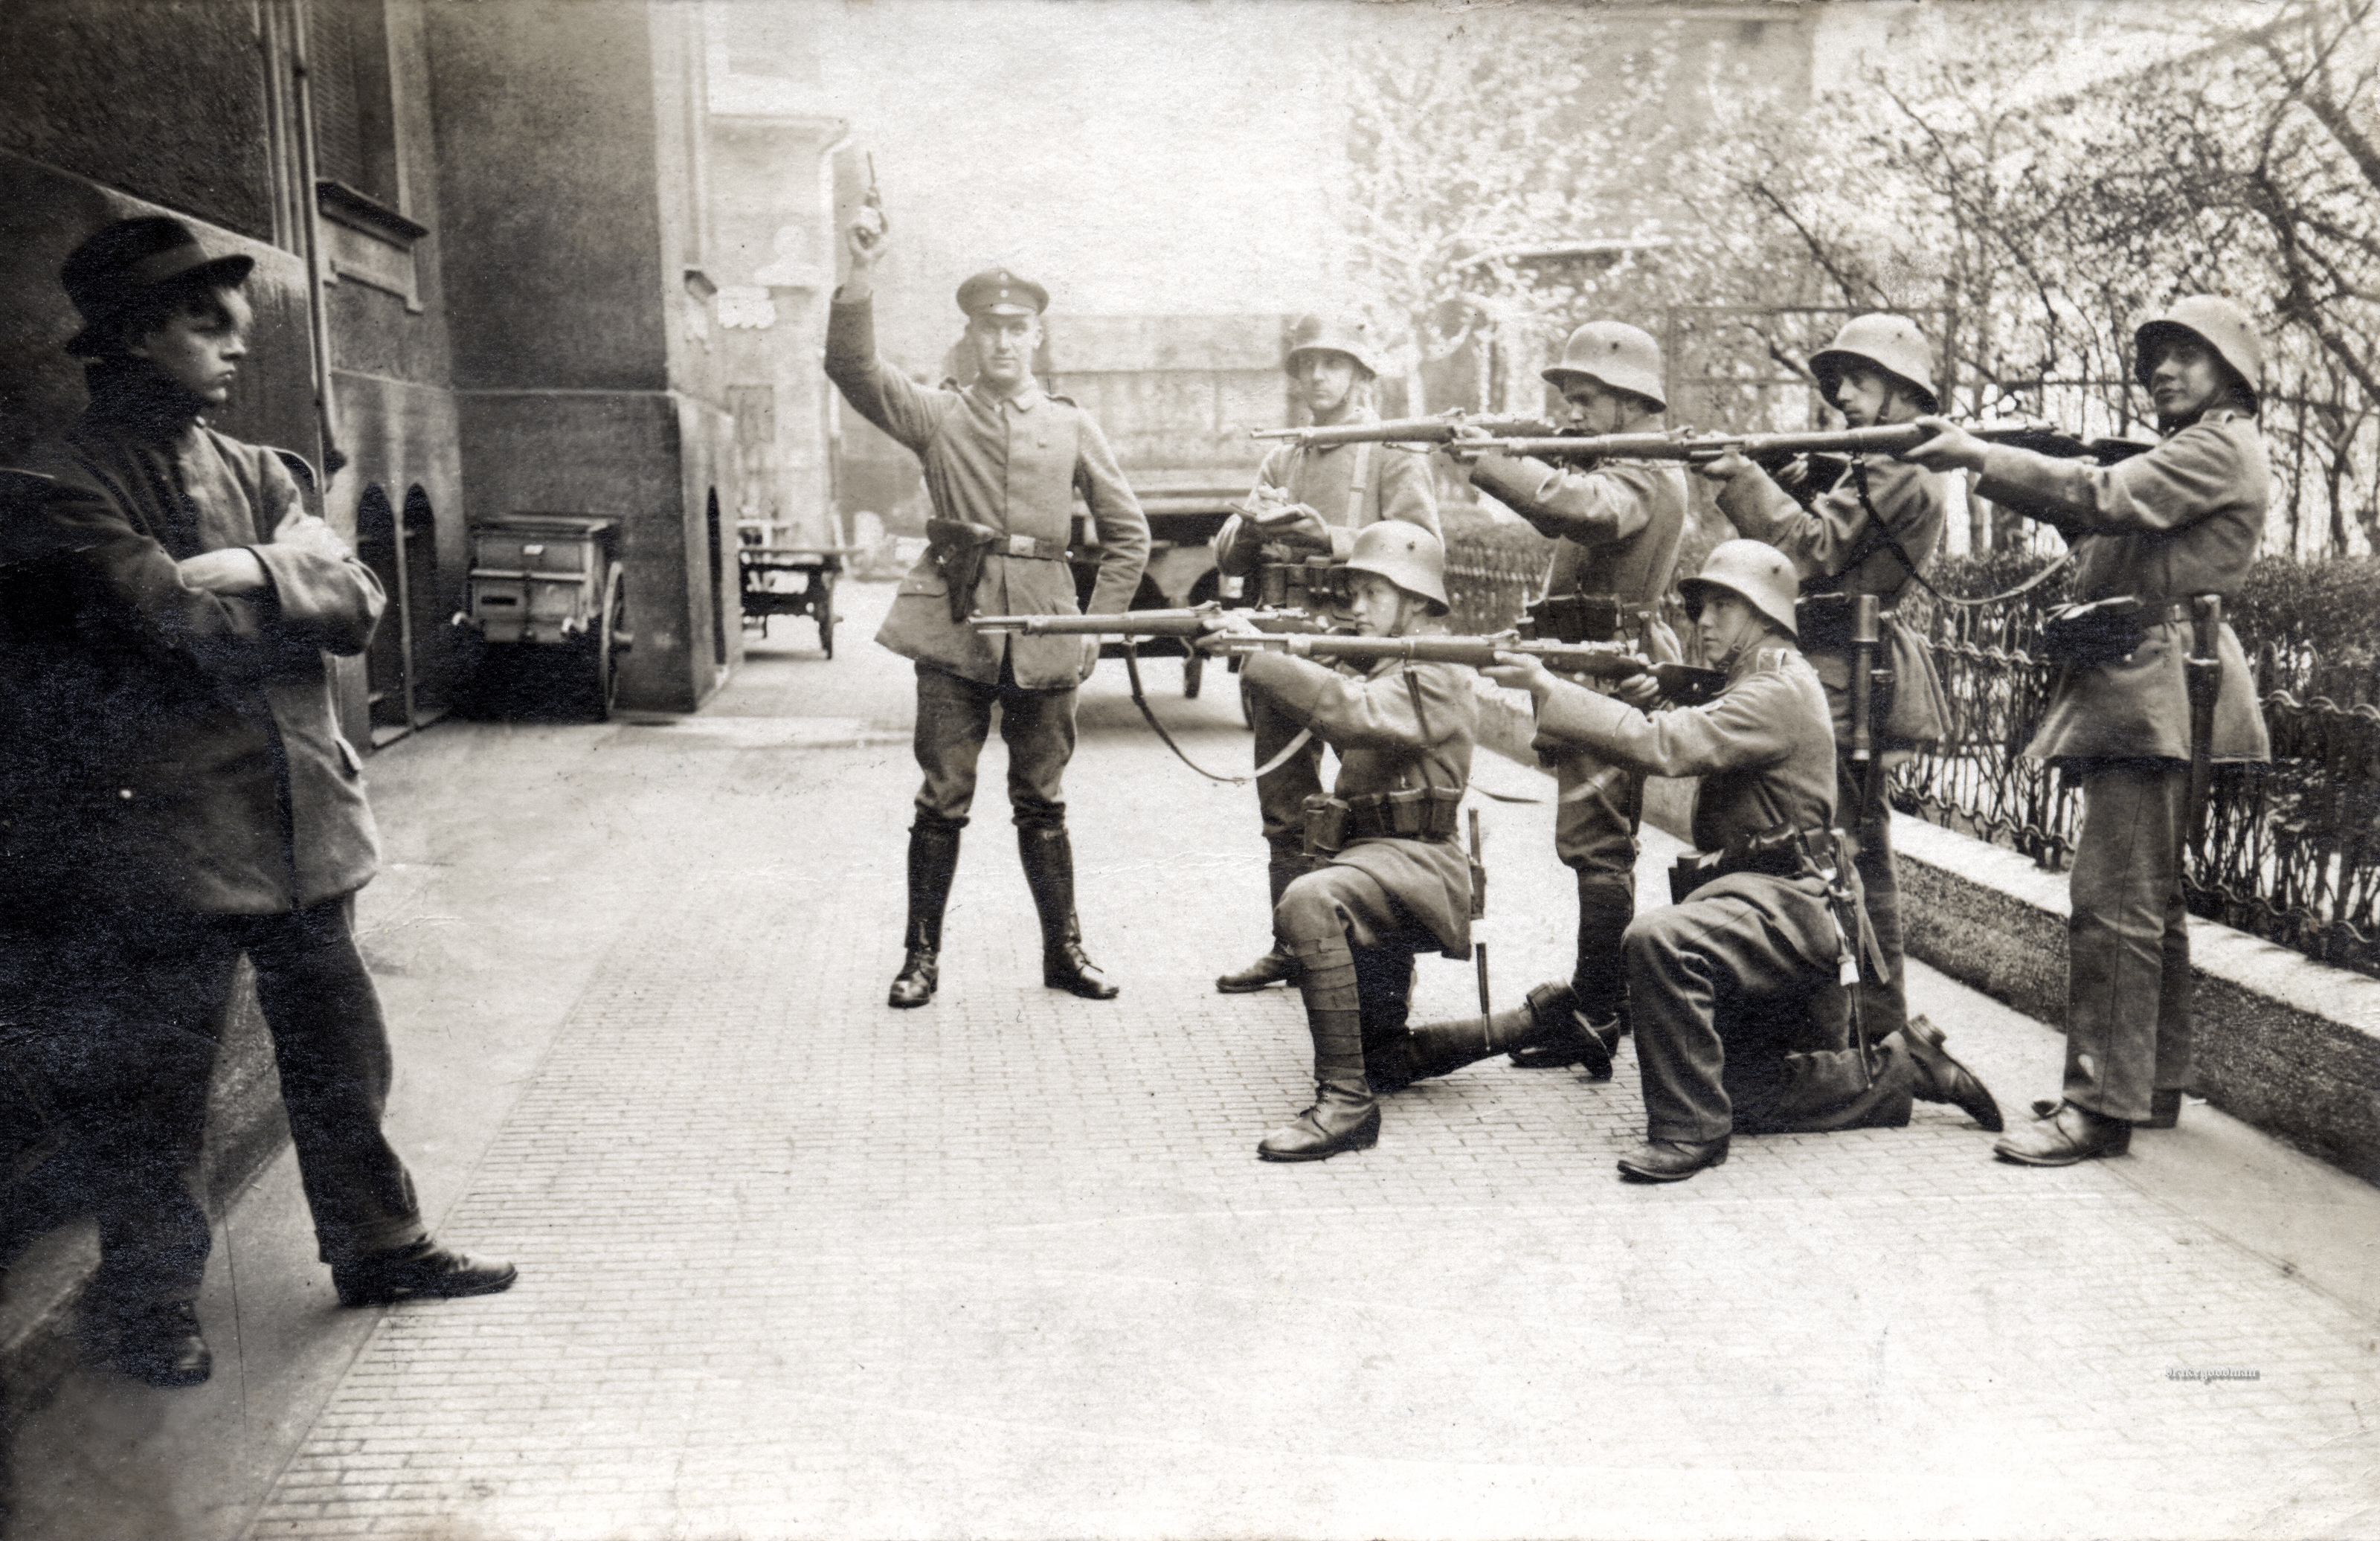 execution-of-a-german-communist-in-munich-1919